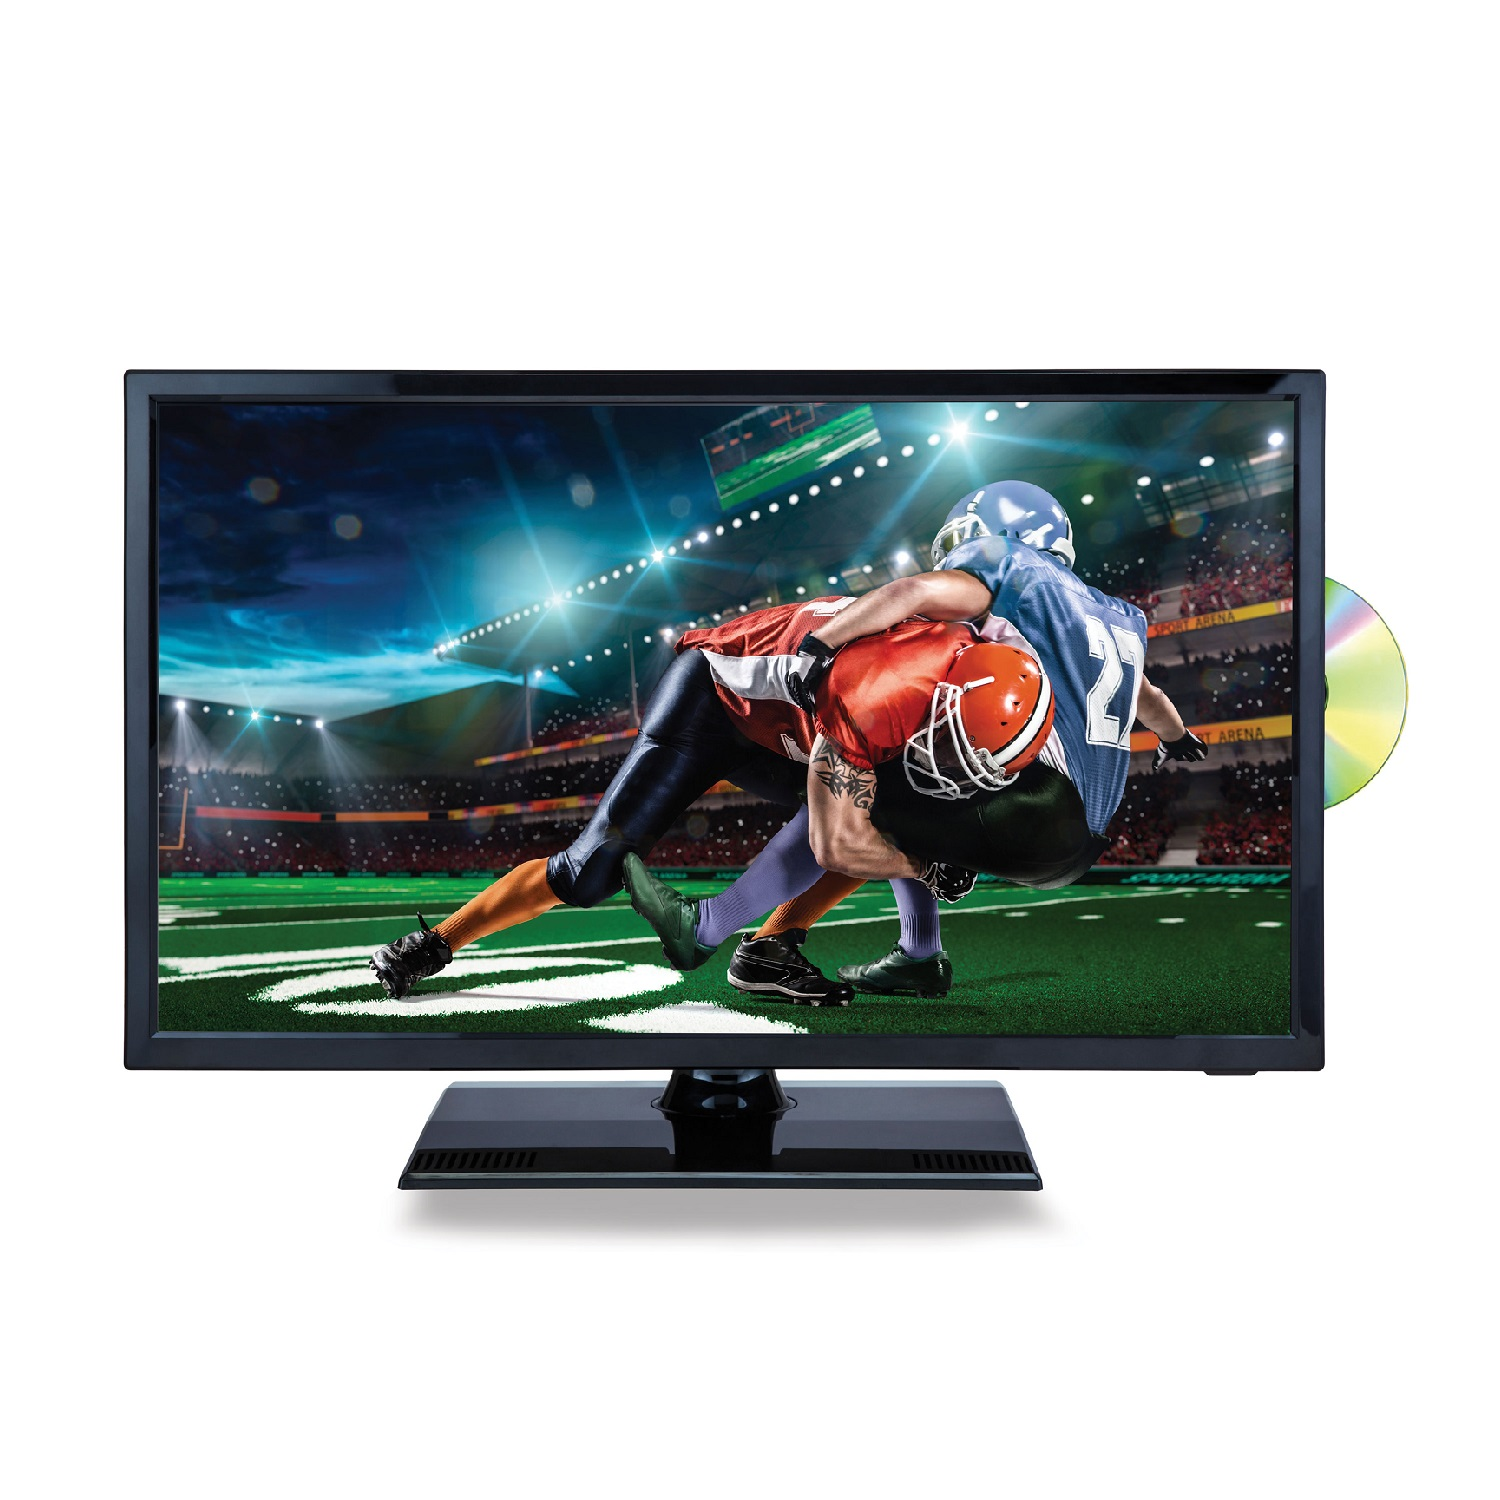 "NAXA NTD-2256 21.5"" HD TV with DVD Player"